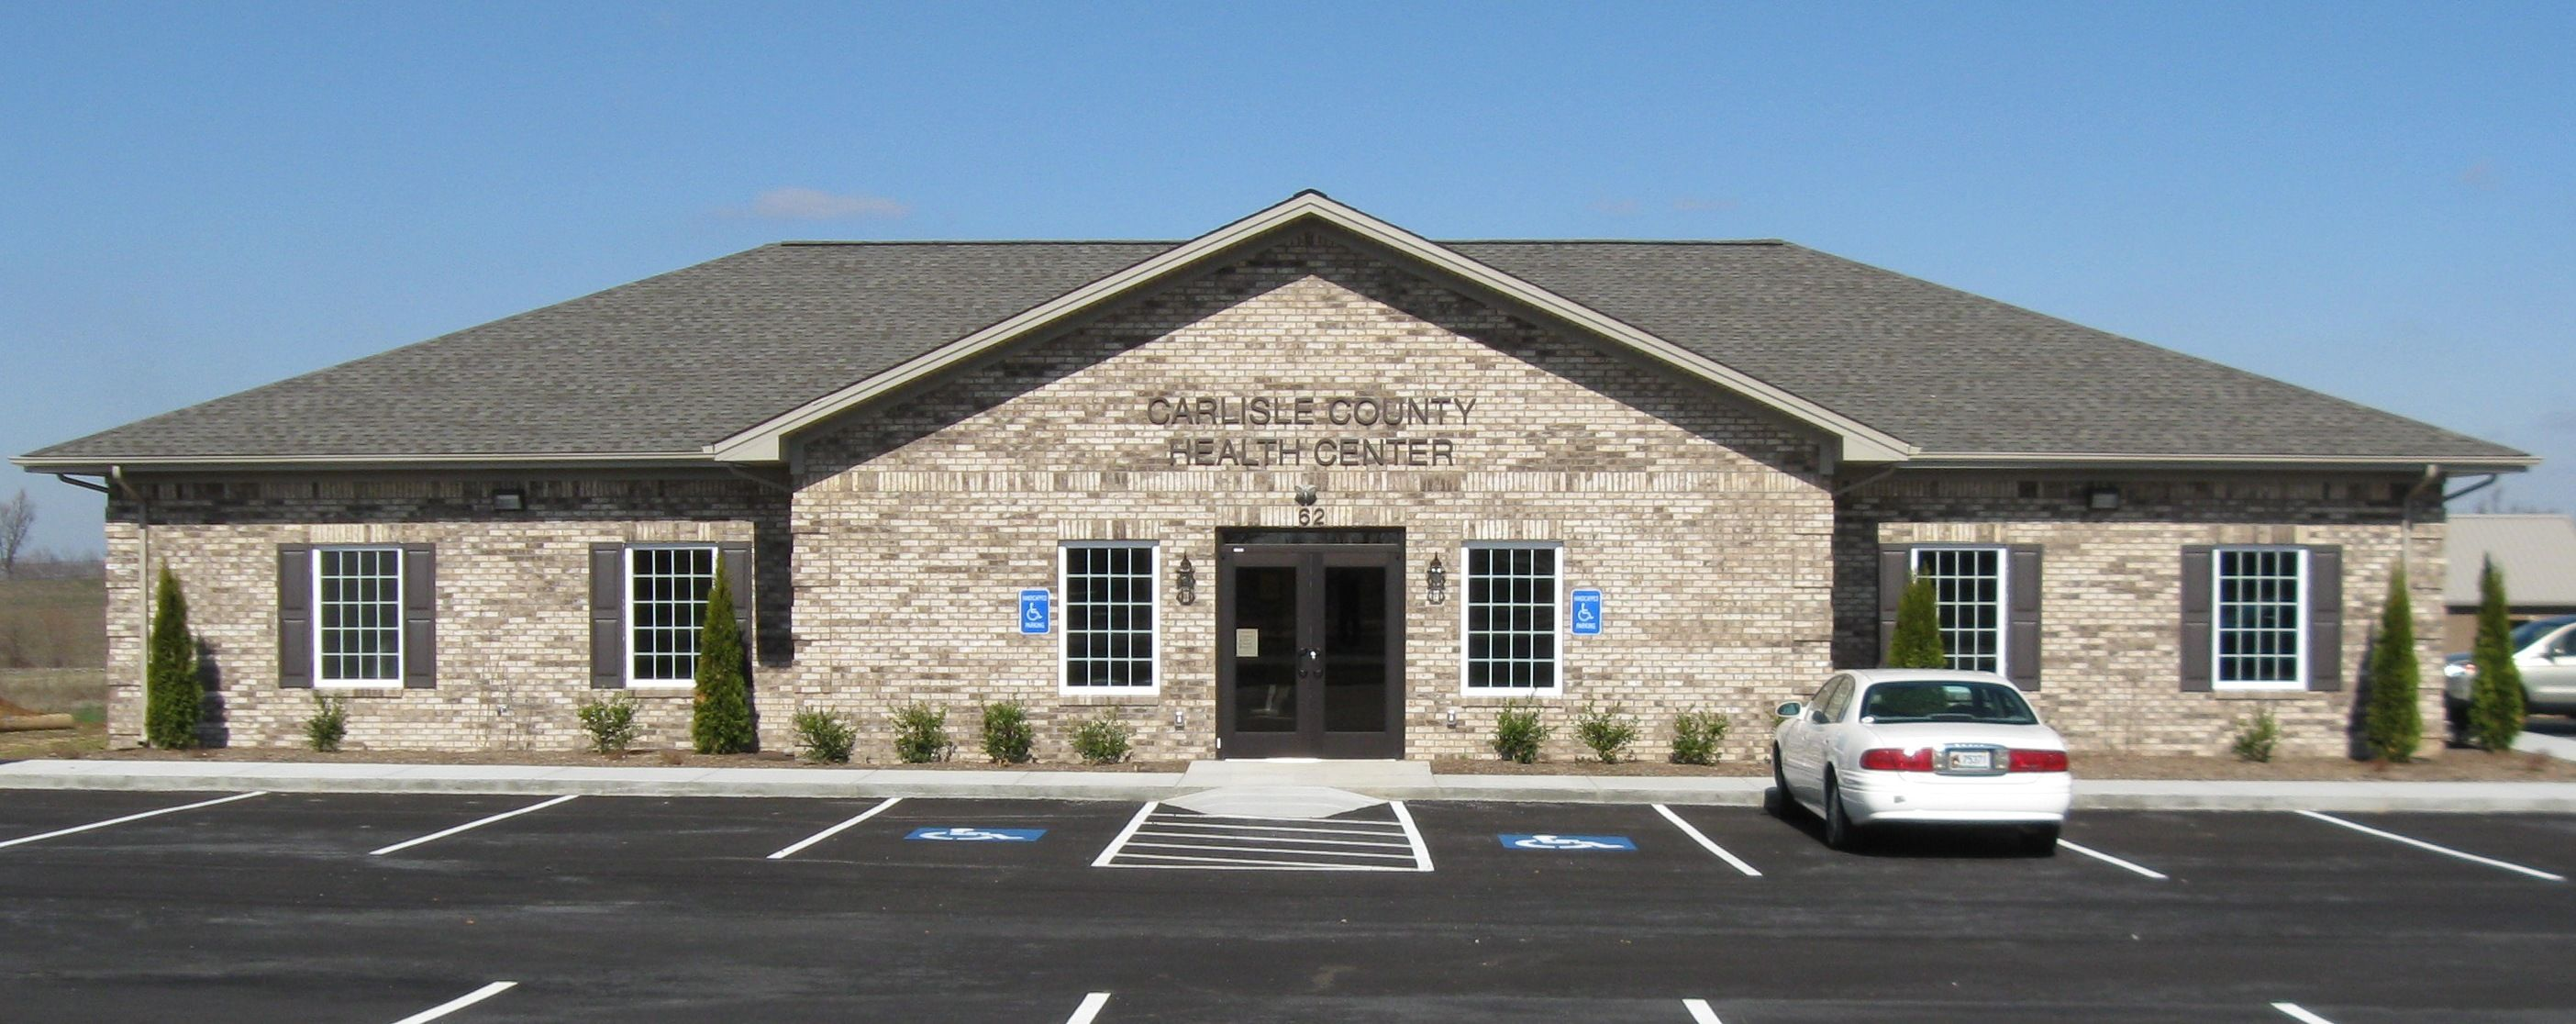 Carlisle County Community Health Center